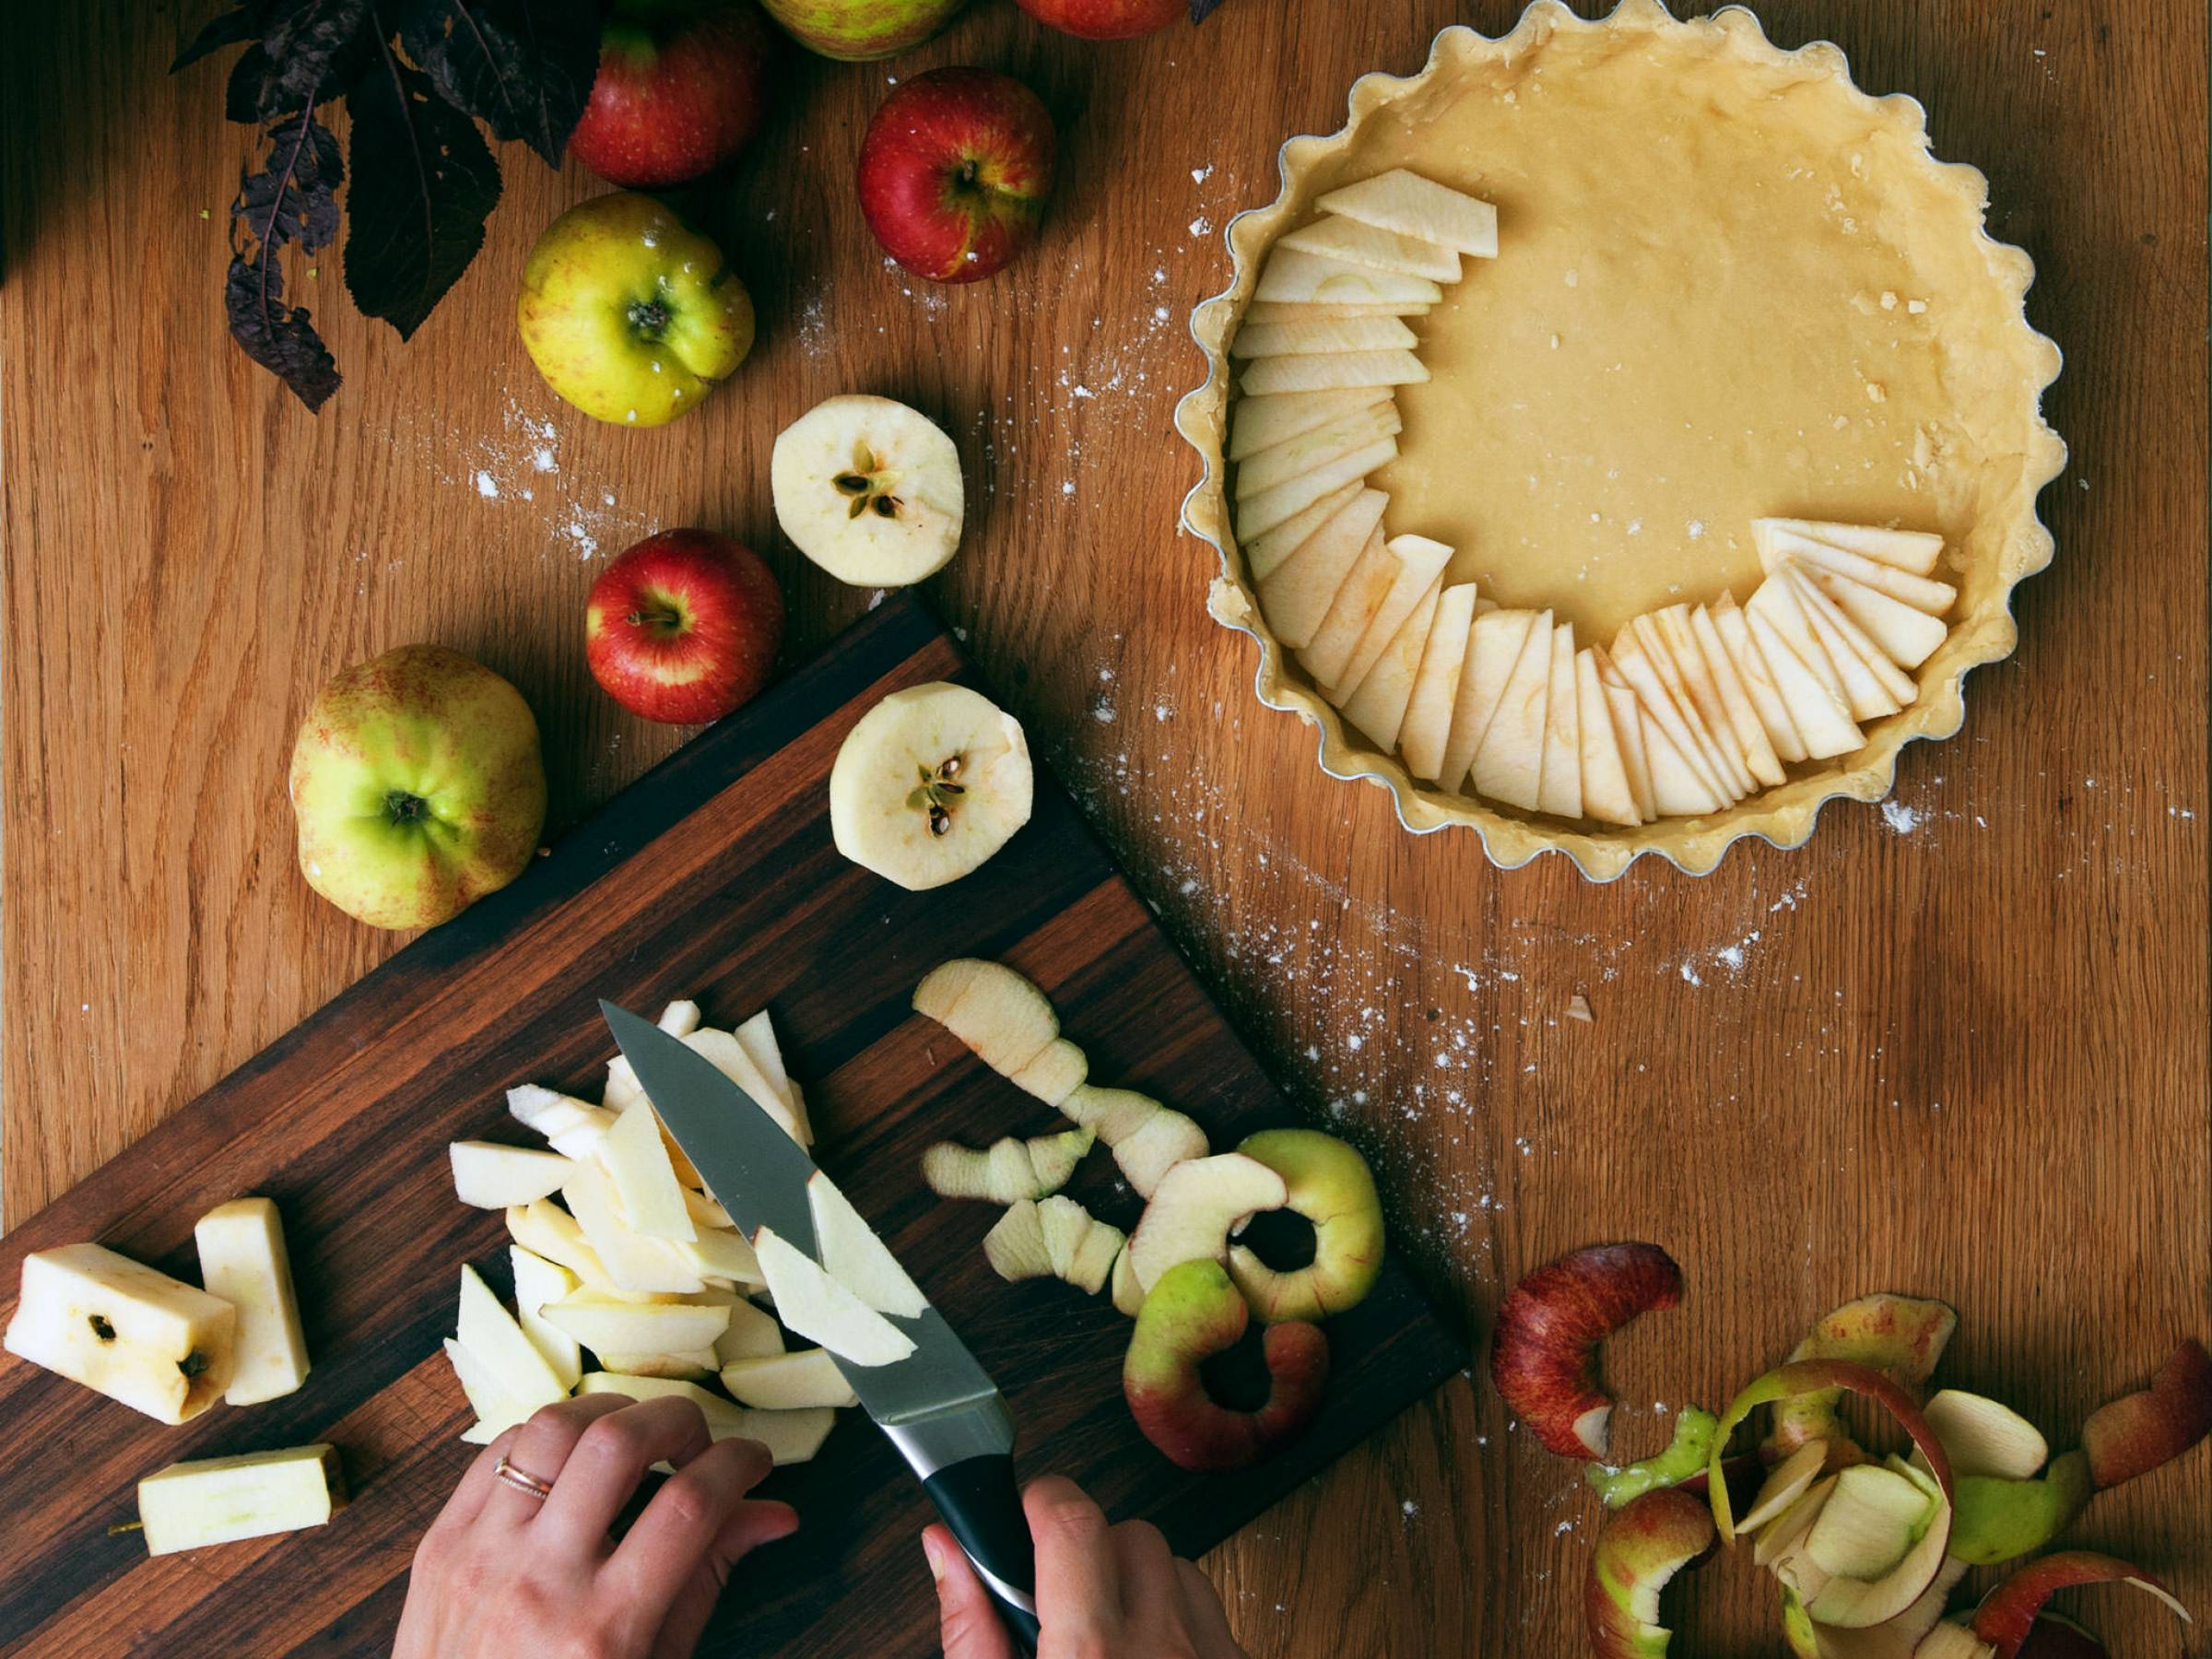 5 Sweet and Savory Ways to Eat Apples